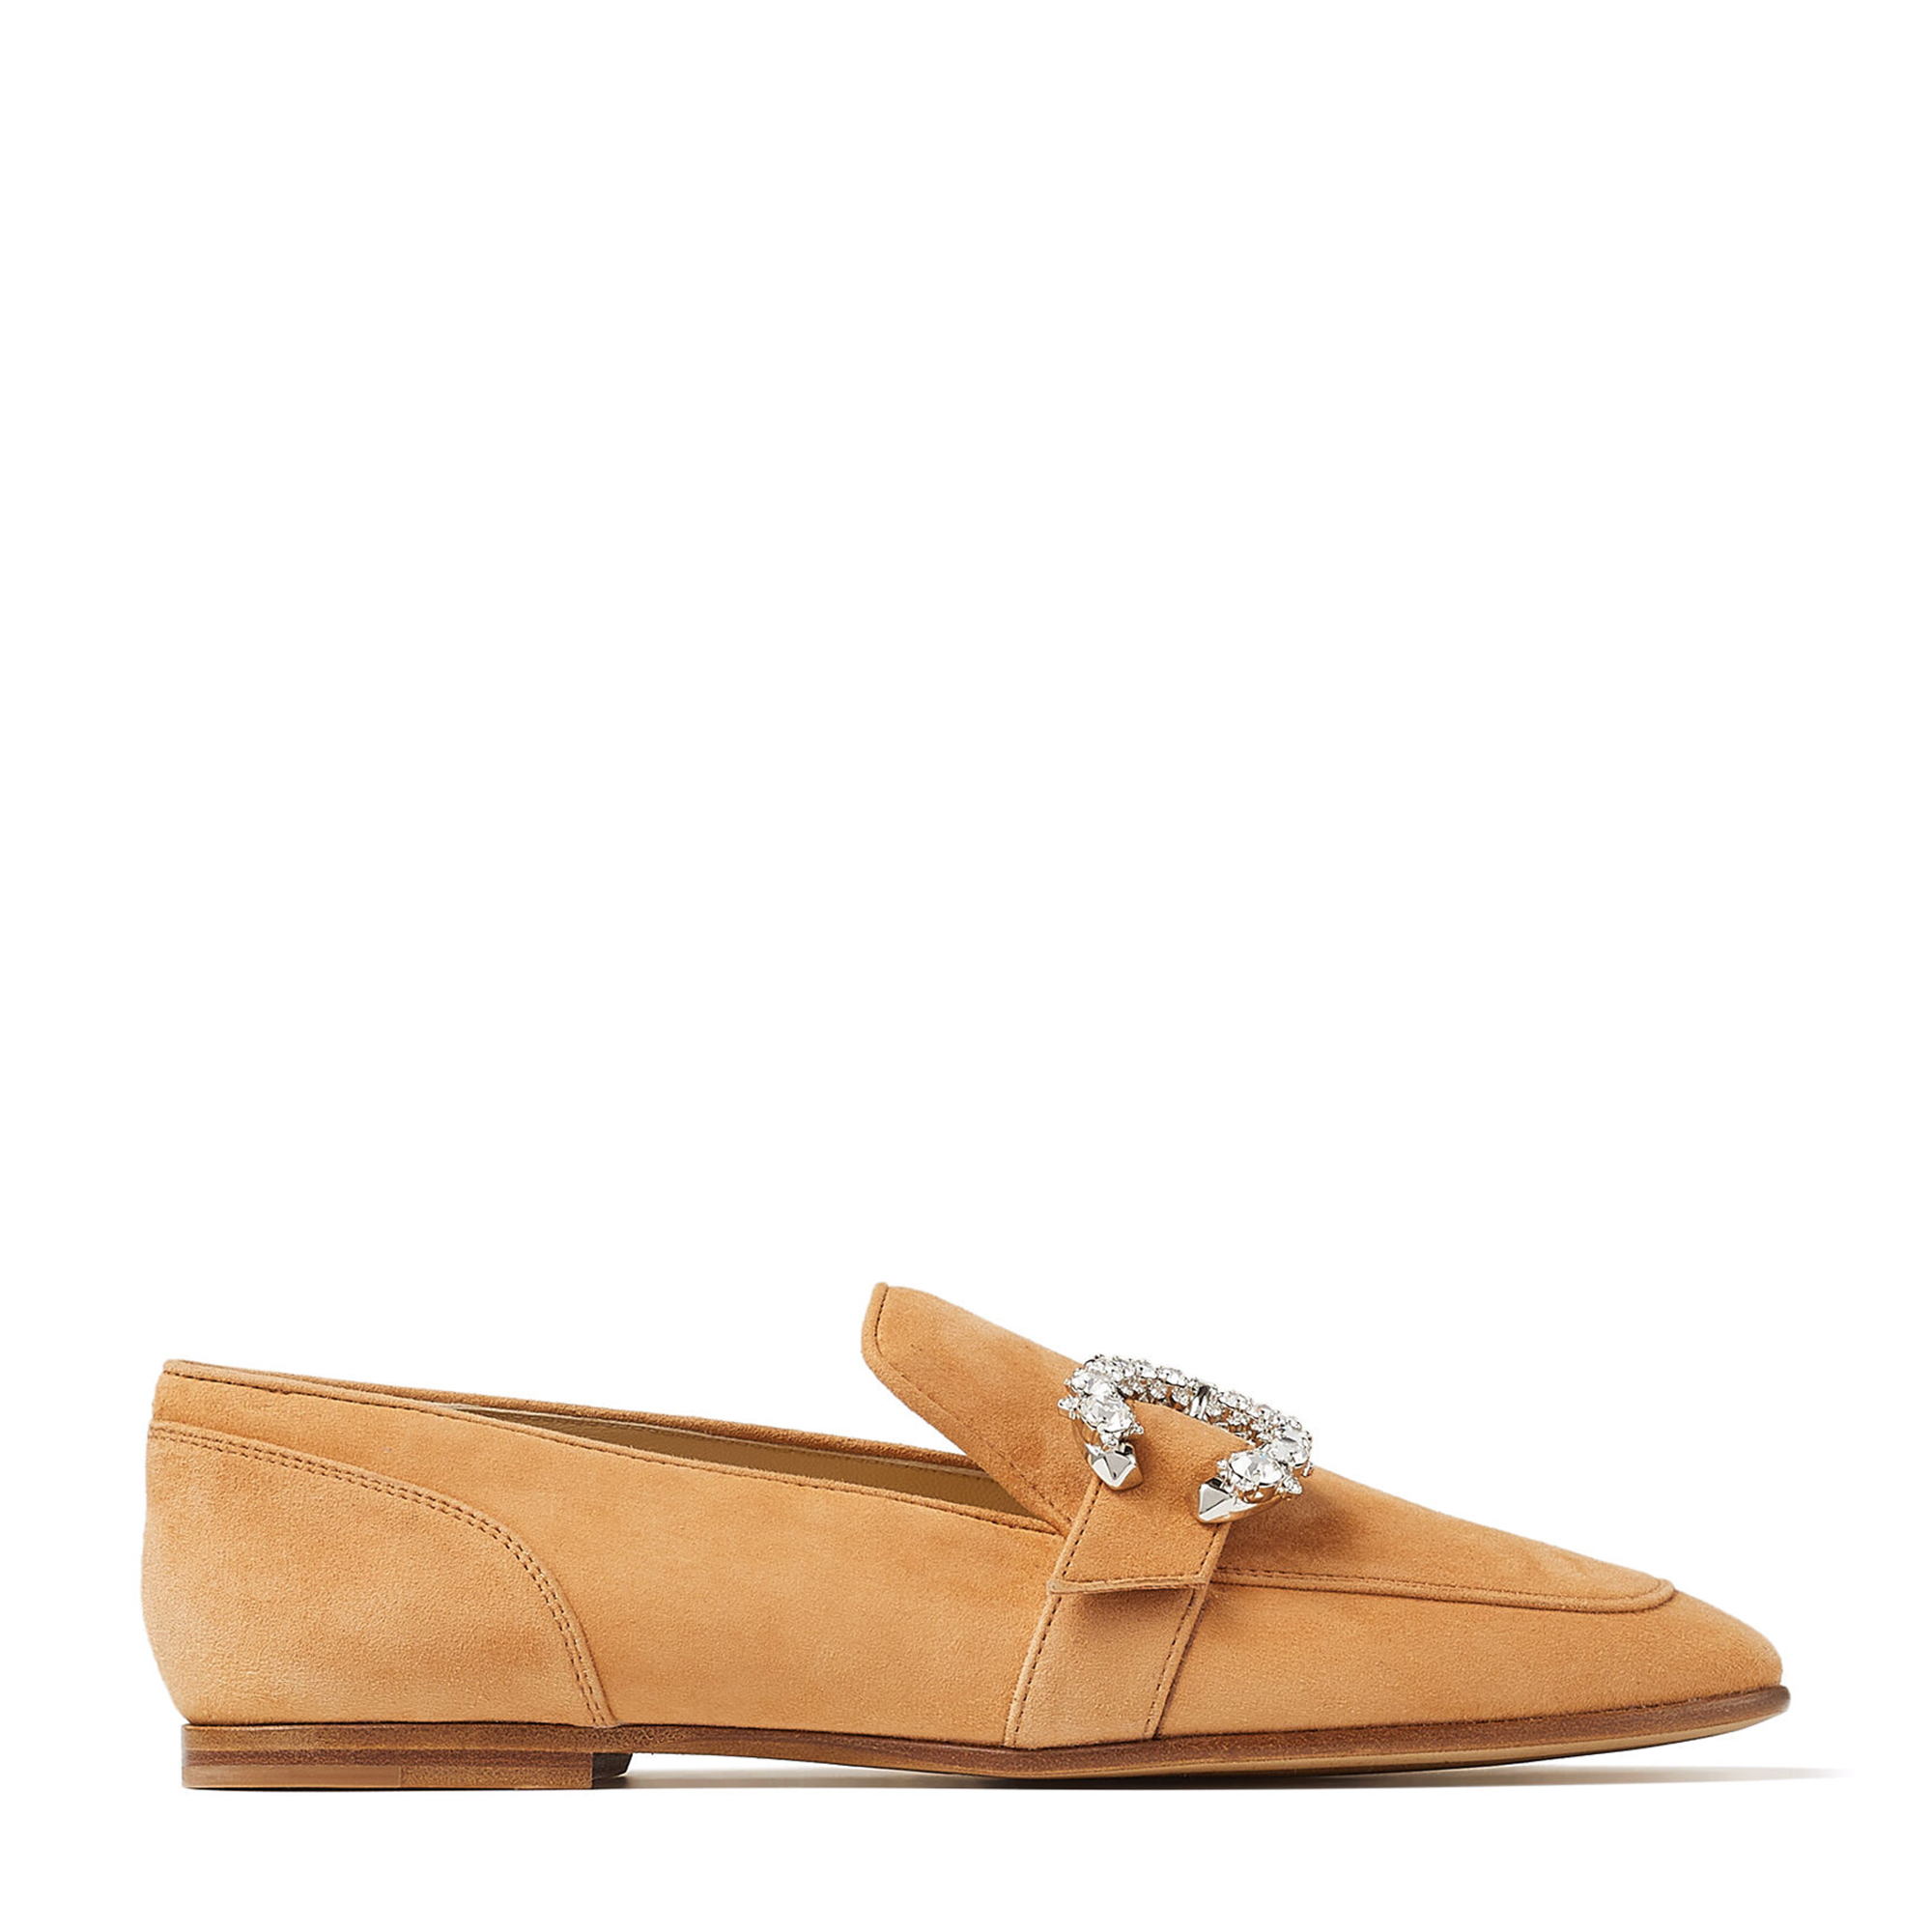 Mani loafers